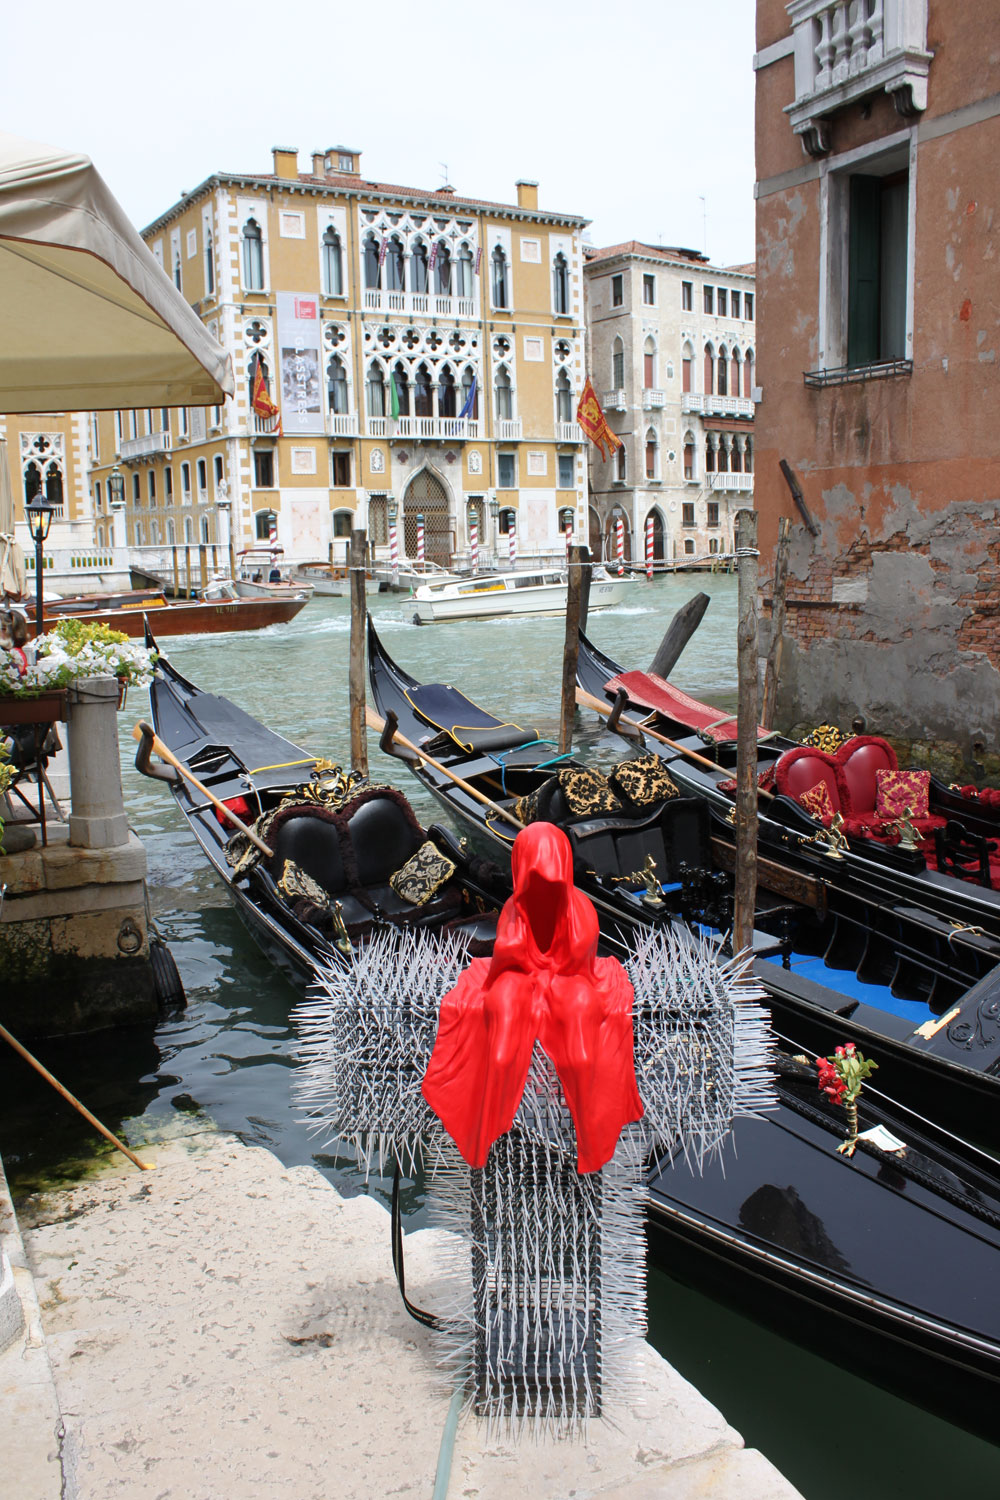 public-show-art-biennial-venice-italy-christoph-luckeneder-manfred-kielnhofer-t-guardian-sculpture-art-arts-arte-3009